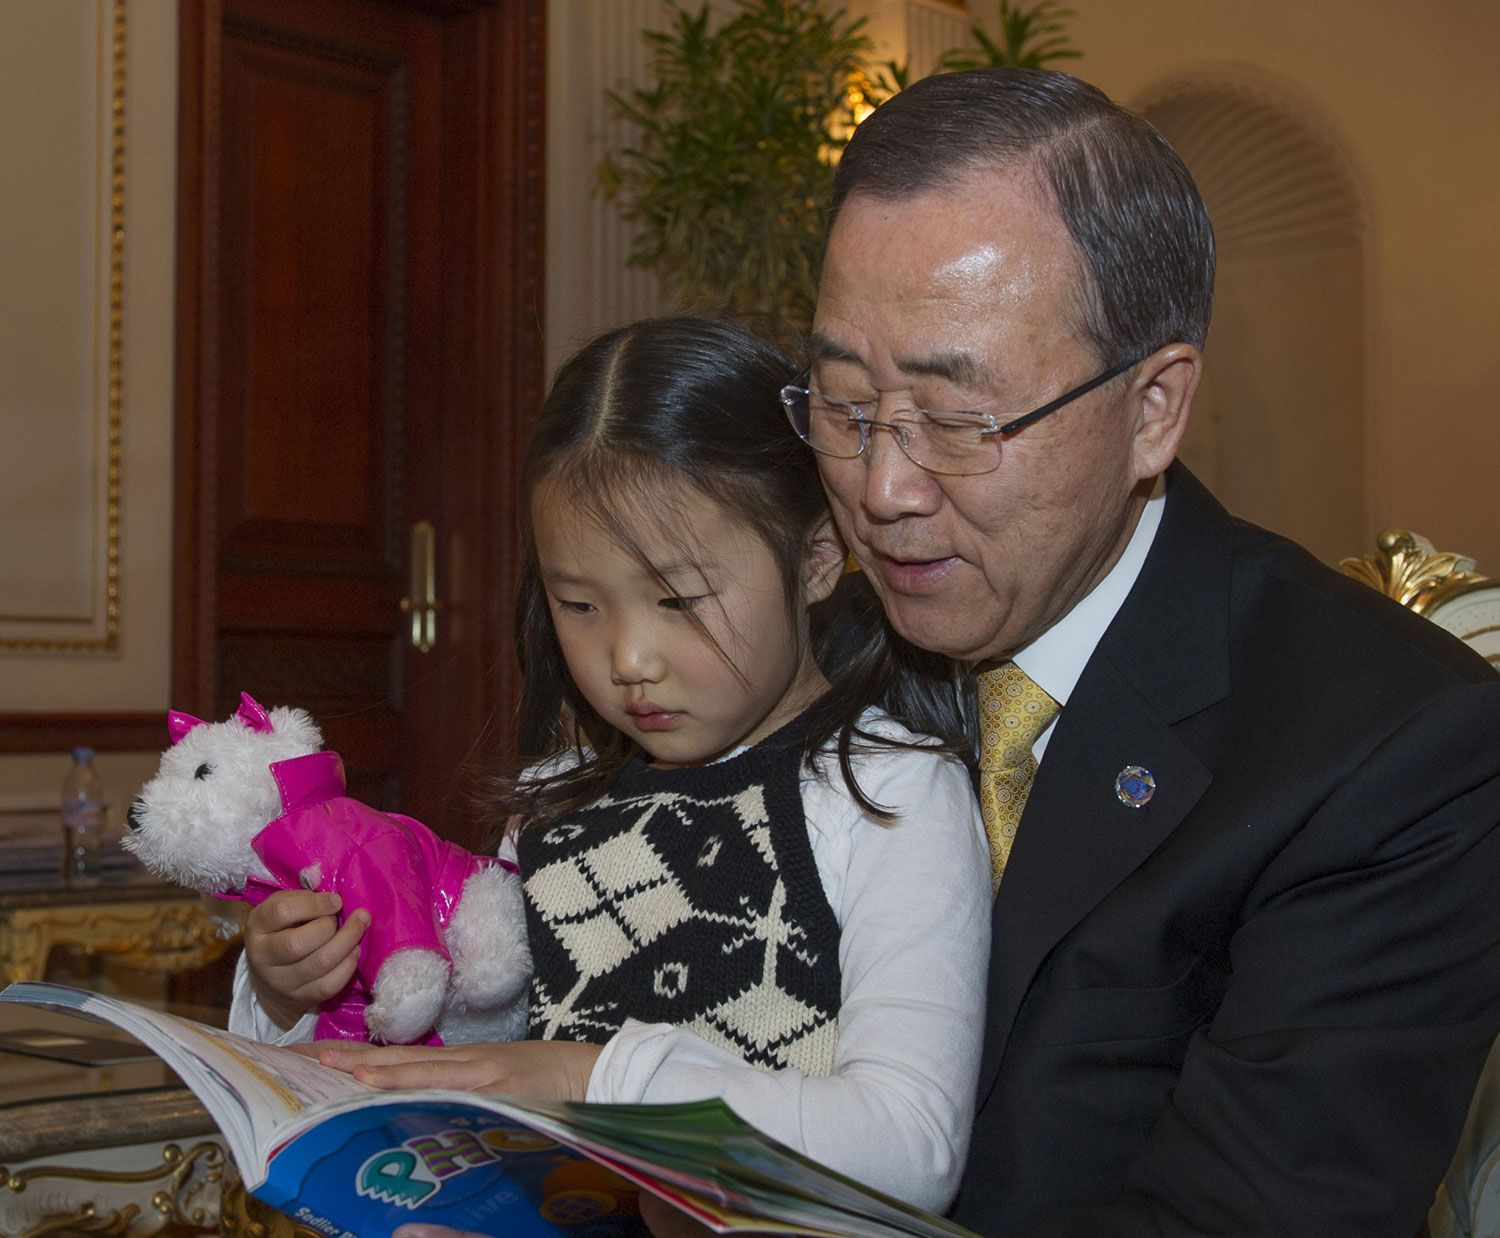 Look who is taking part in the #GIRLWITHABOOK intiative -- on a recent visit home to the Republic of Korea Secretary-General Ban Ki-moon sat down and read a book with his granddaughter.    Now there are even more ways to get involved in this important initiative in honour of #Malala Yusufzai. Take a look at the details here http://j.mp/REPObk and pin your photo today!